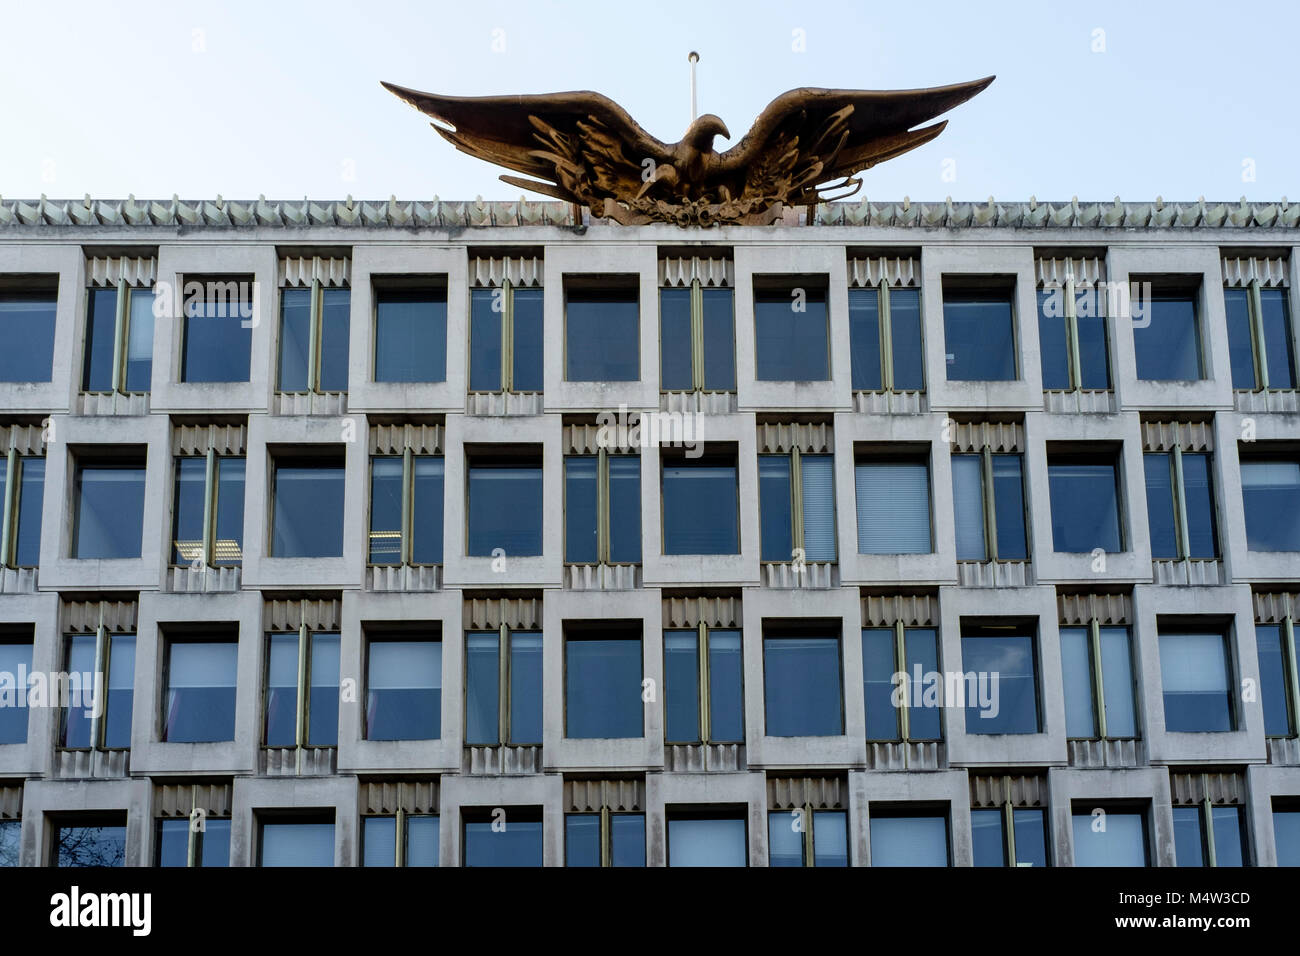 Bronze eagle atop the US Embassy Chancery building, Grosvenor Square, London - Stock Image